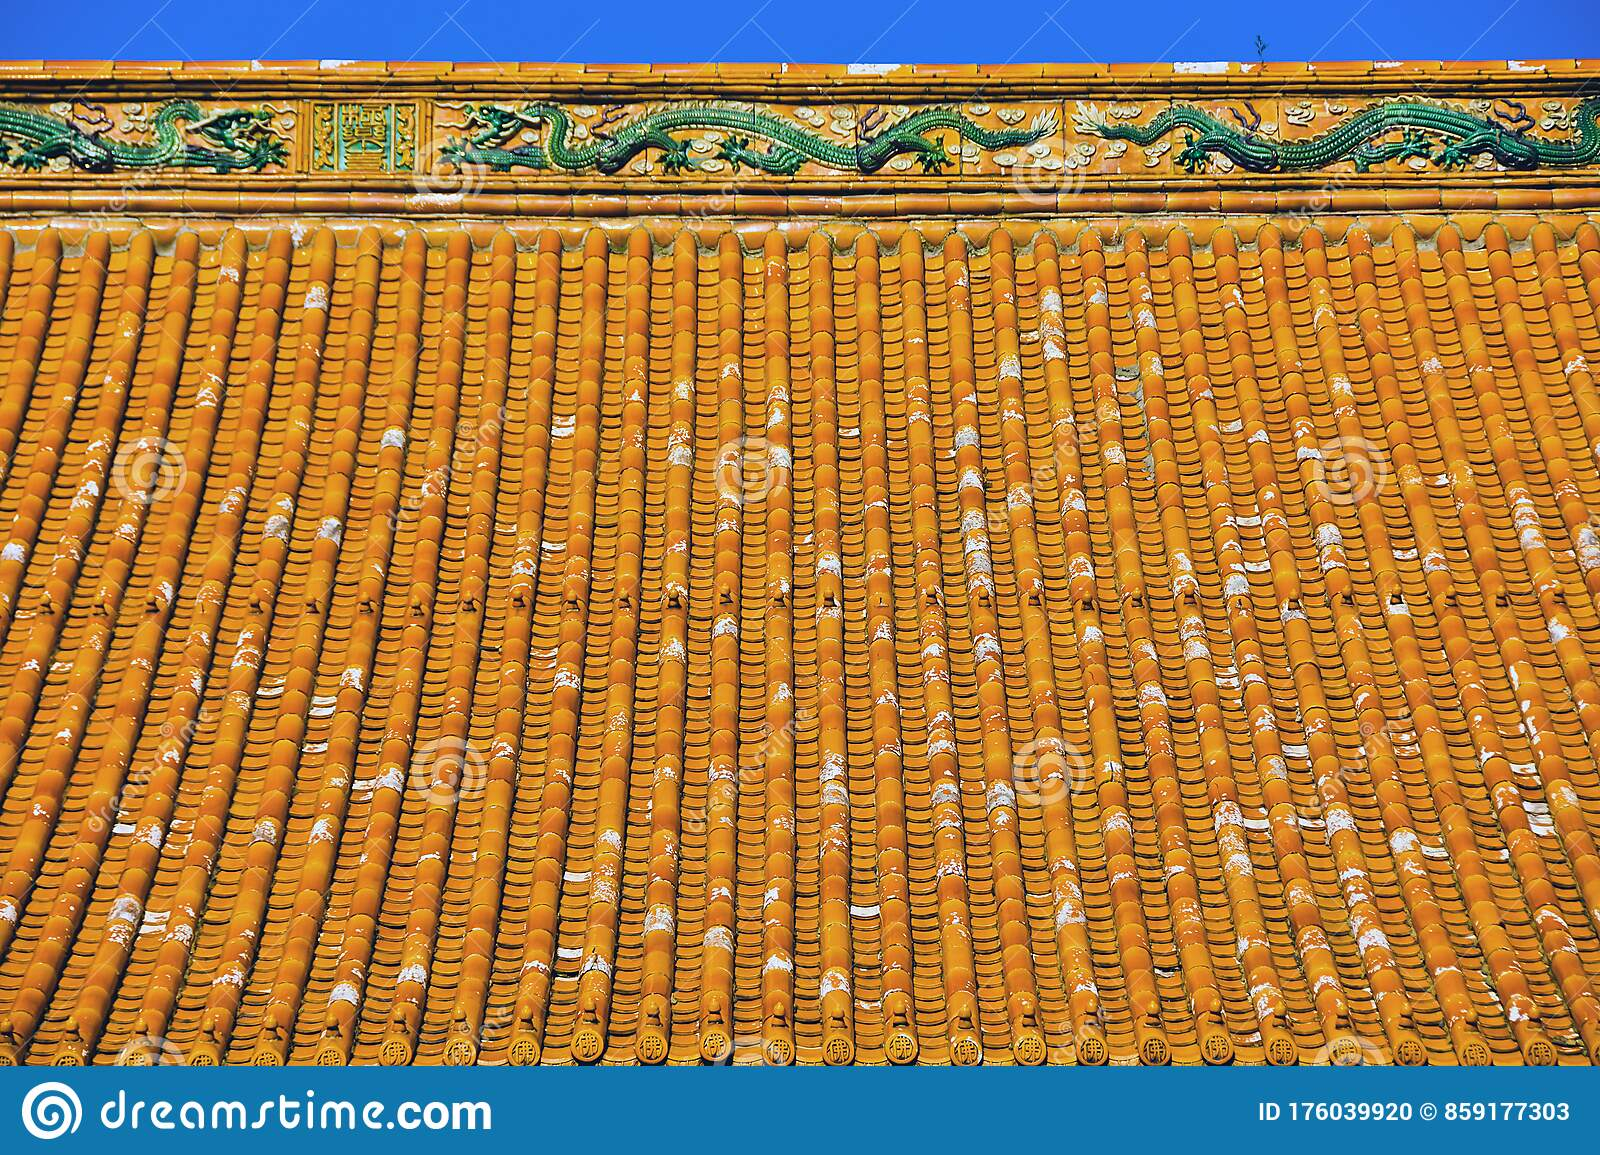 Chinese Glazed Roof Tile Stock Photo Image Of Palace 176039920